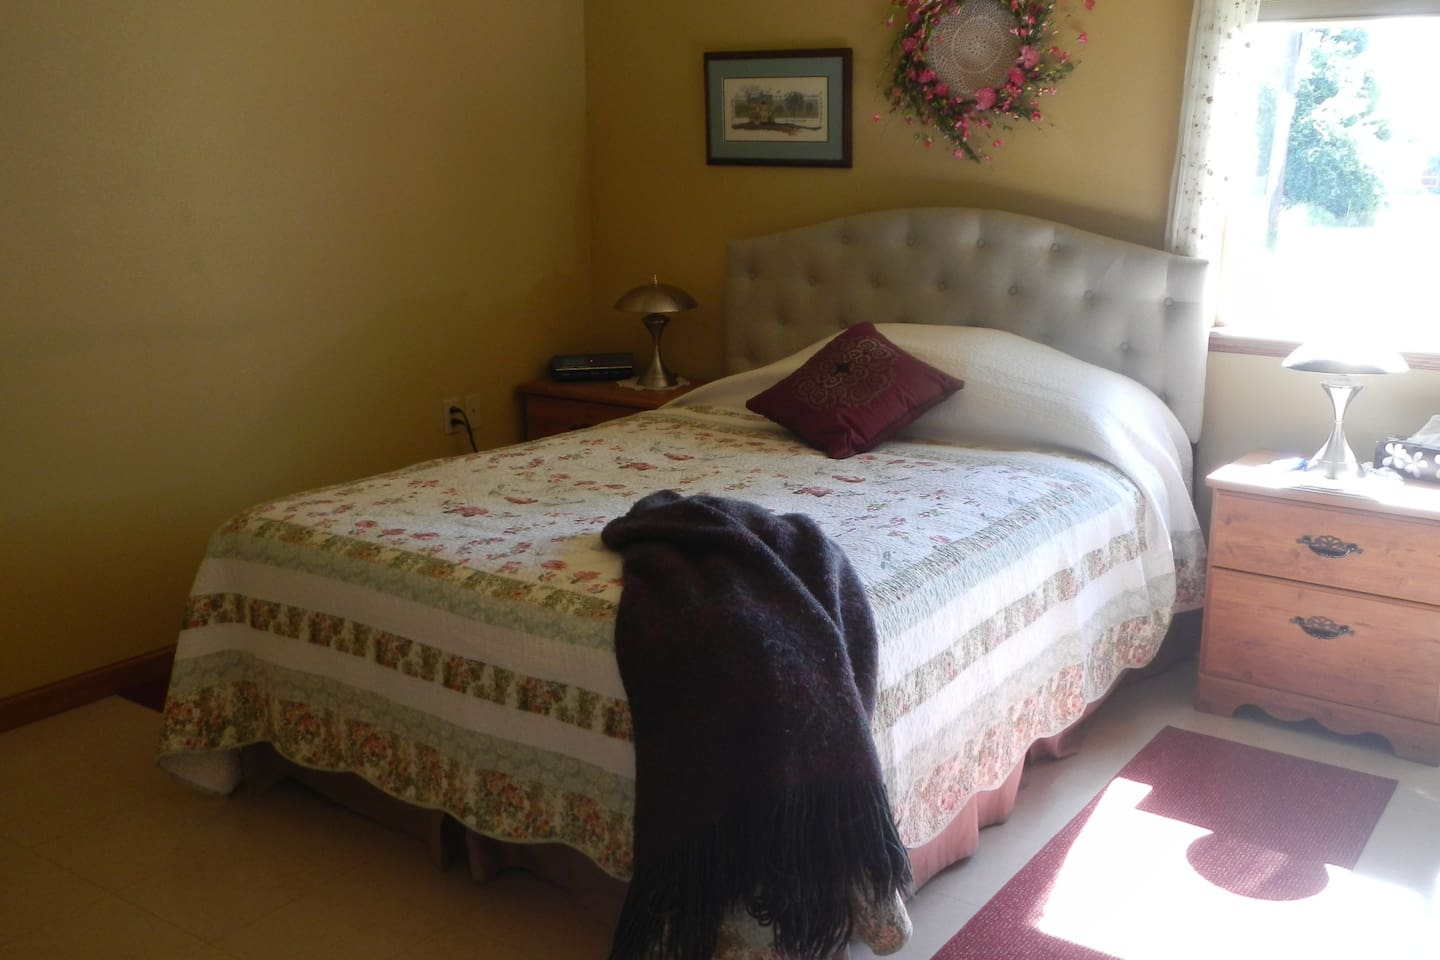 This is the master bedroom with queen size bed connected to full bathroom.